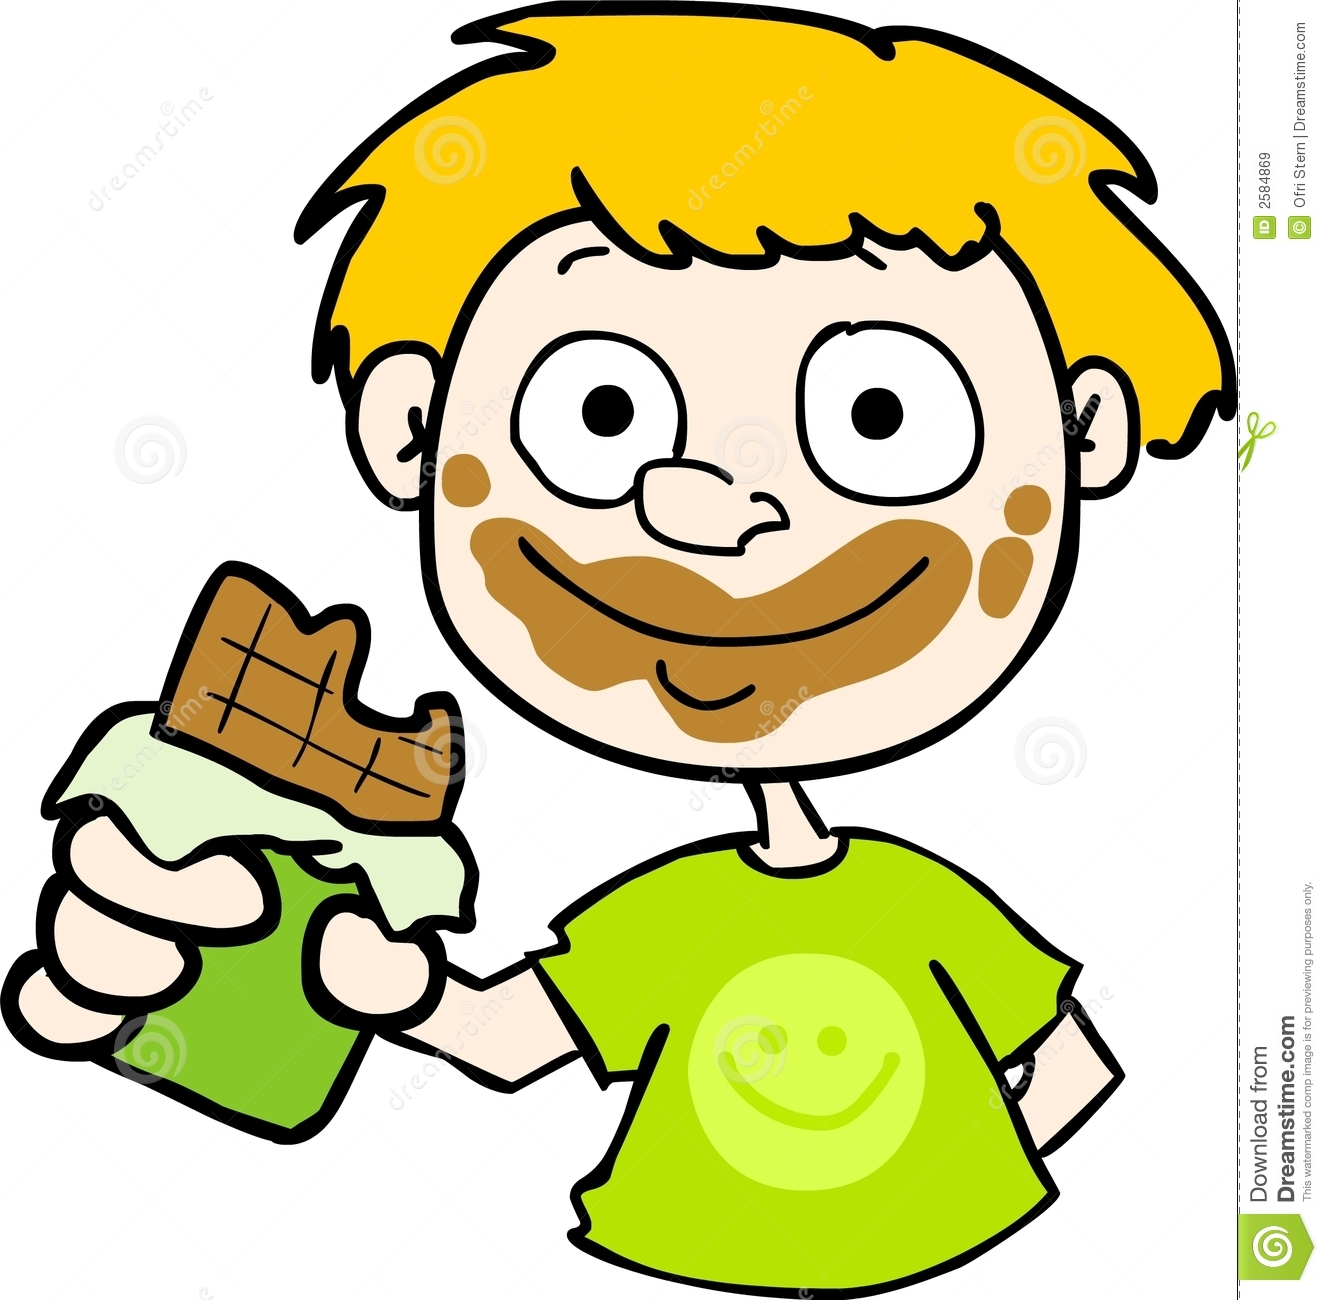 Eating Snack Clipart - Clipart Kid